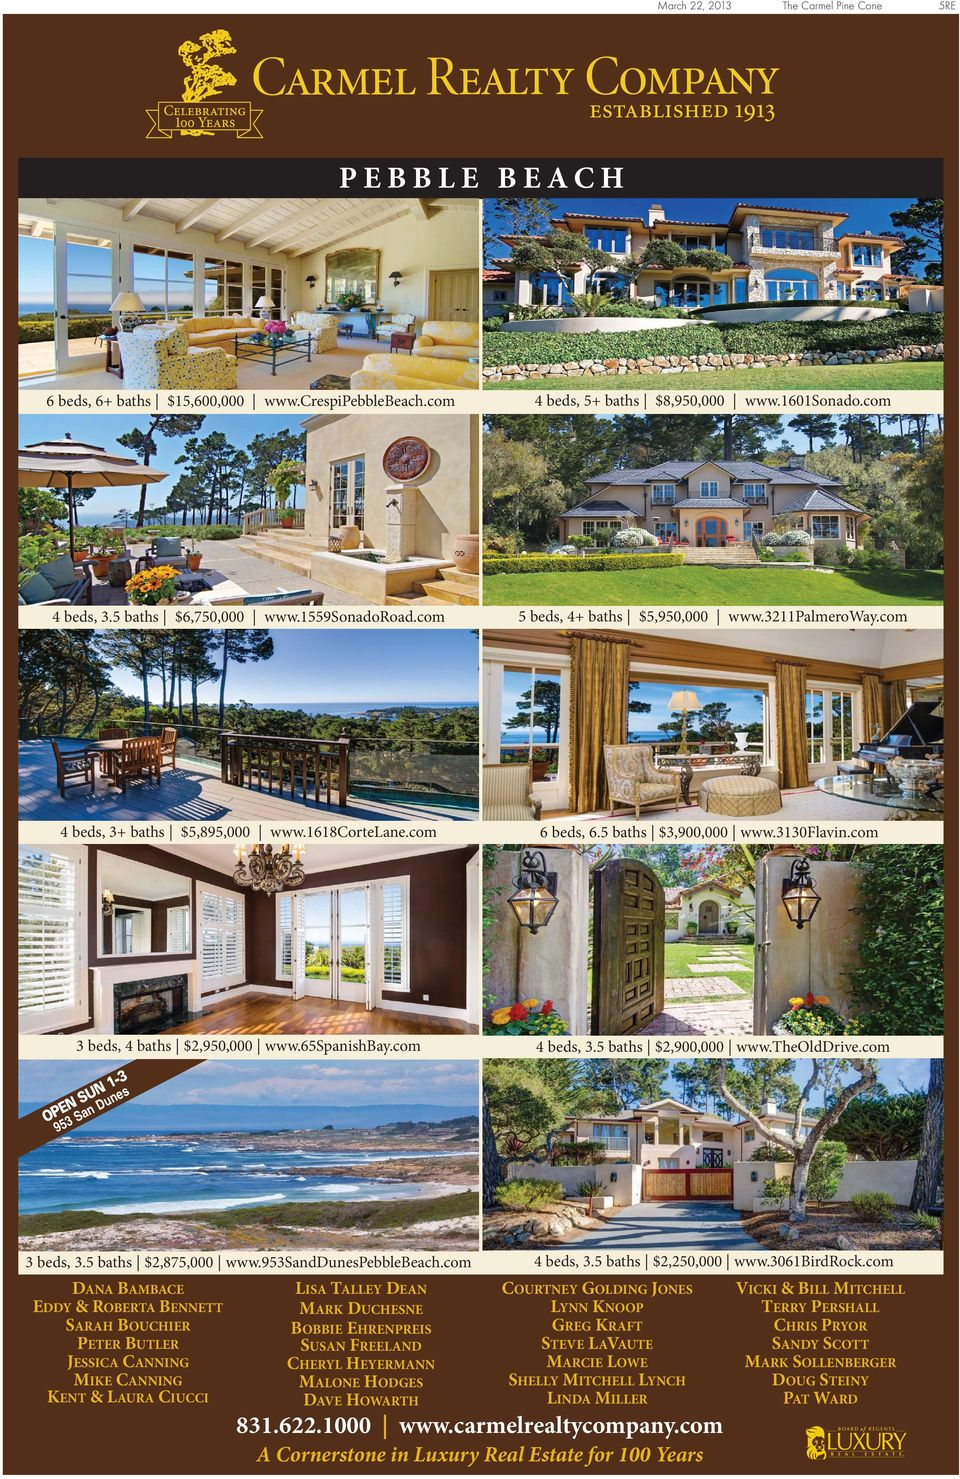 com 4 beds, 3.5 baths $2,900,000 www.theolddrive.com OPEN SUN 1-3 953 San Dunes 3 beds, 3.5 baths $2,875,000 www.953sanddunespebblebeach.